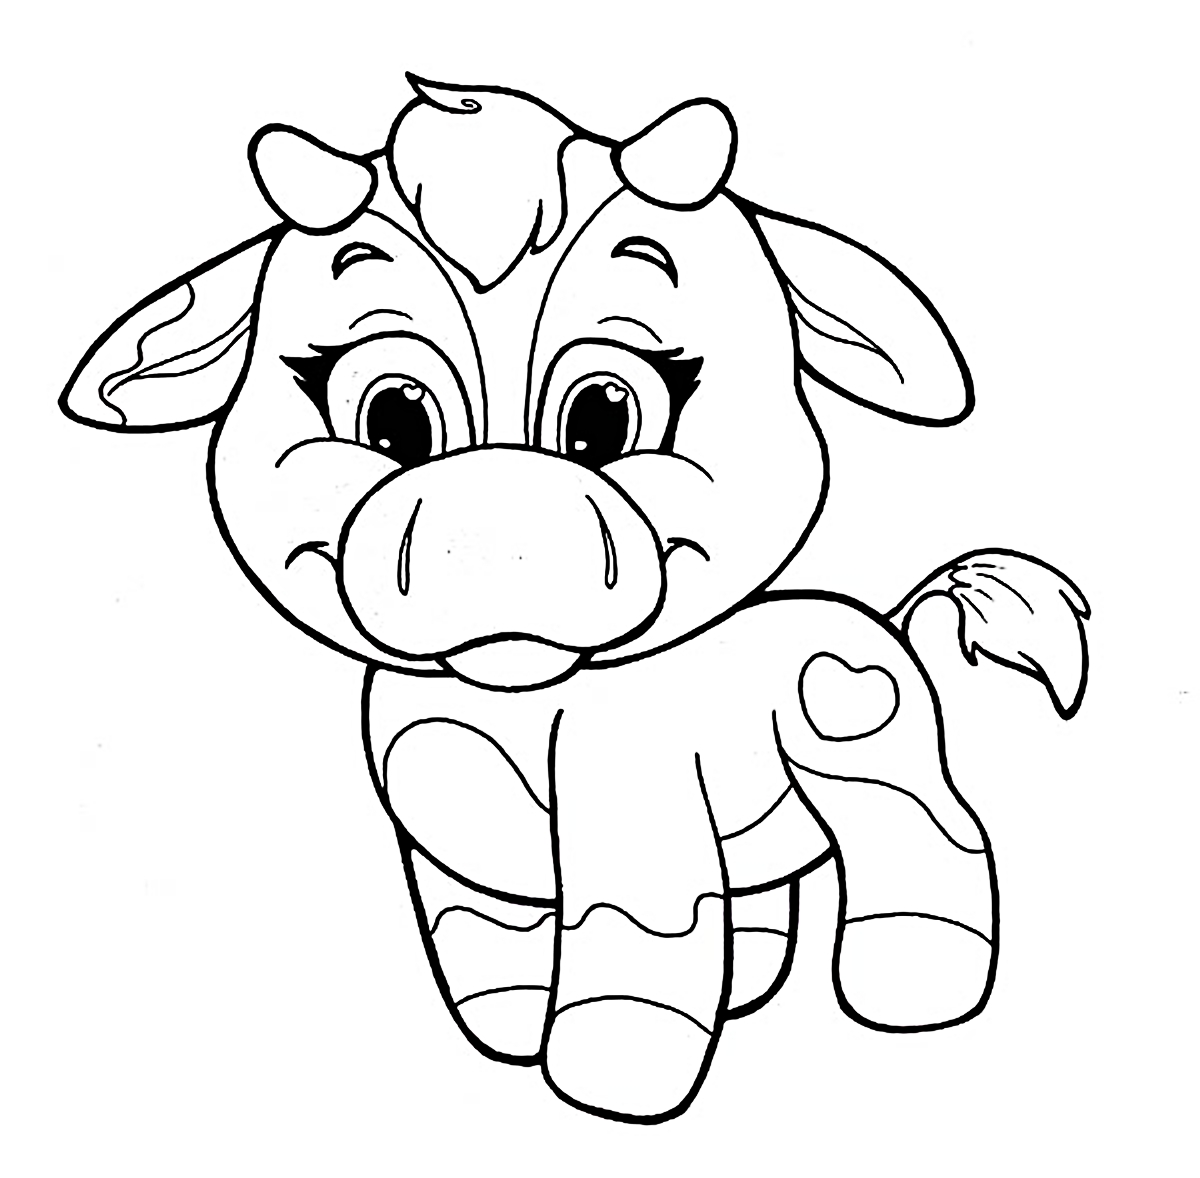 coloring page cow cute cartoon cow coloring page free printable coloring pages cow page coloring